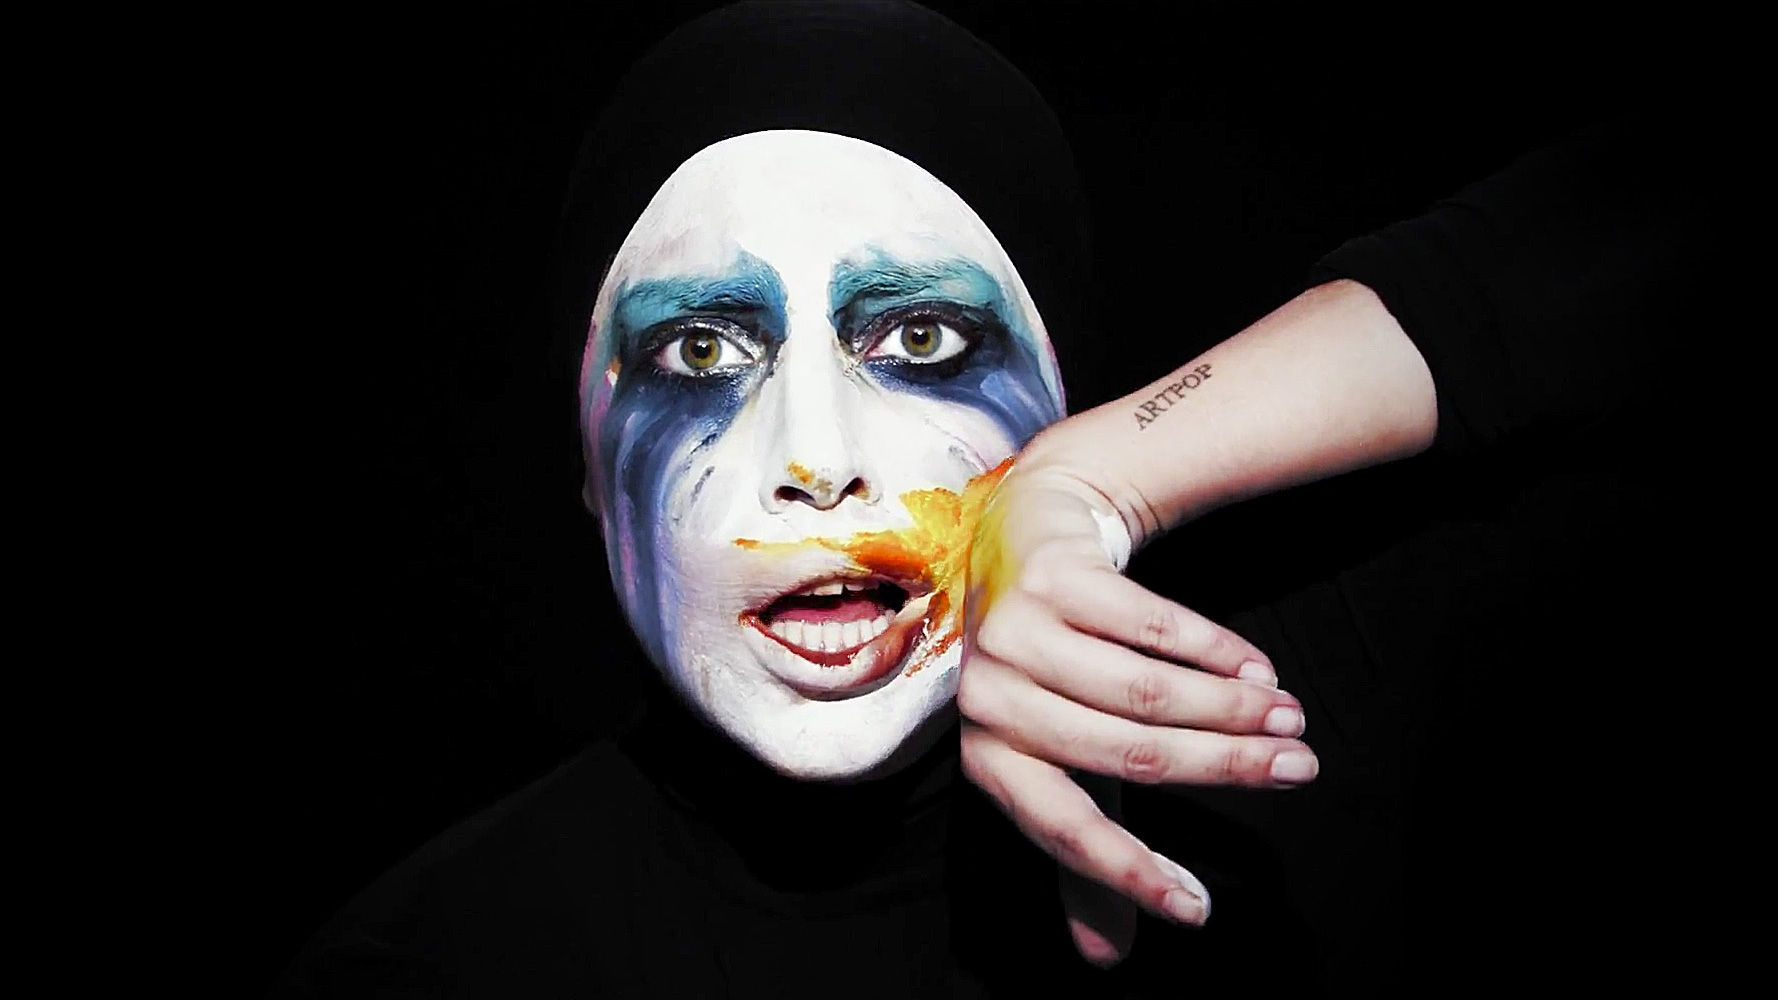 Can lady gaga applause excellent answer